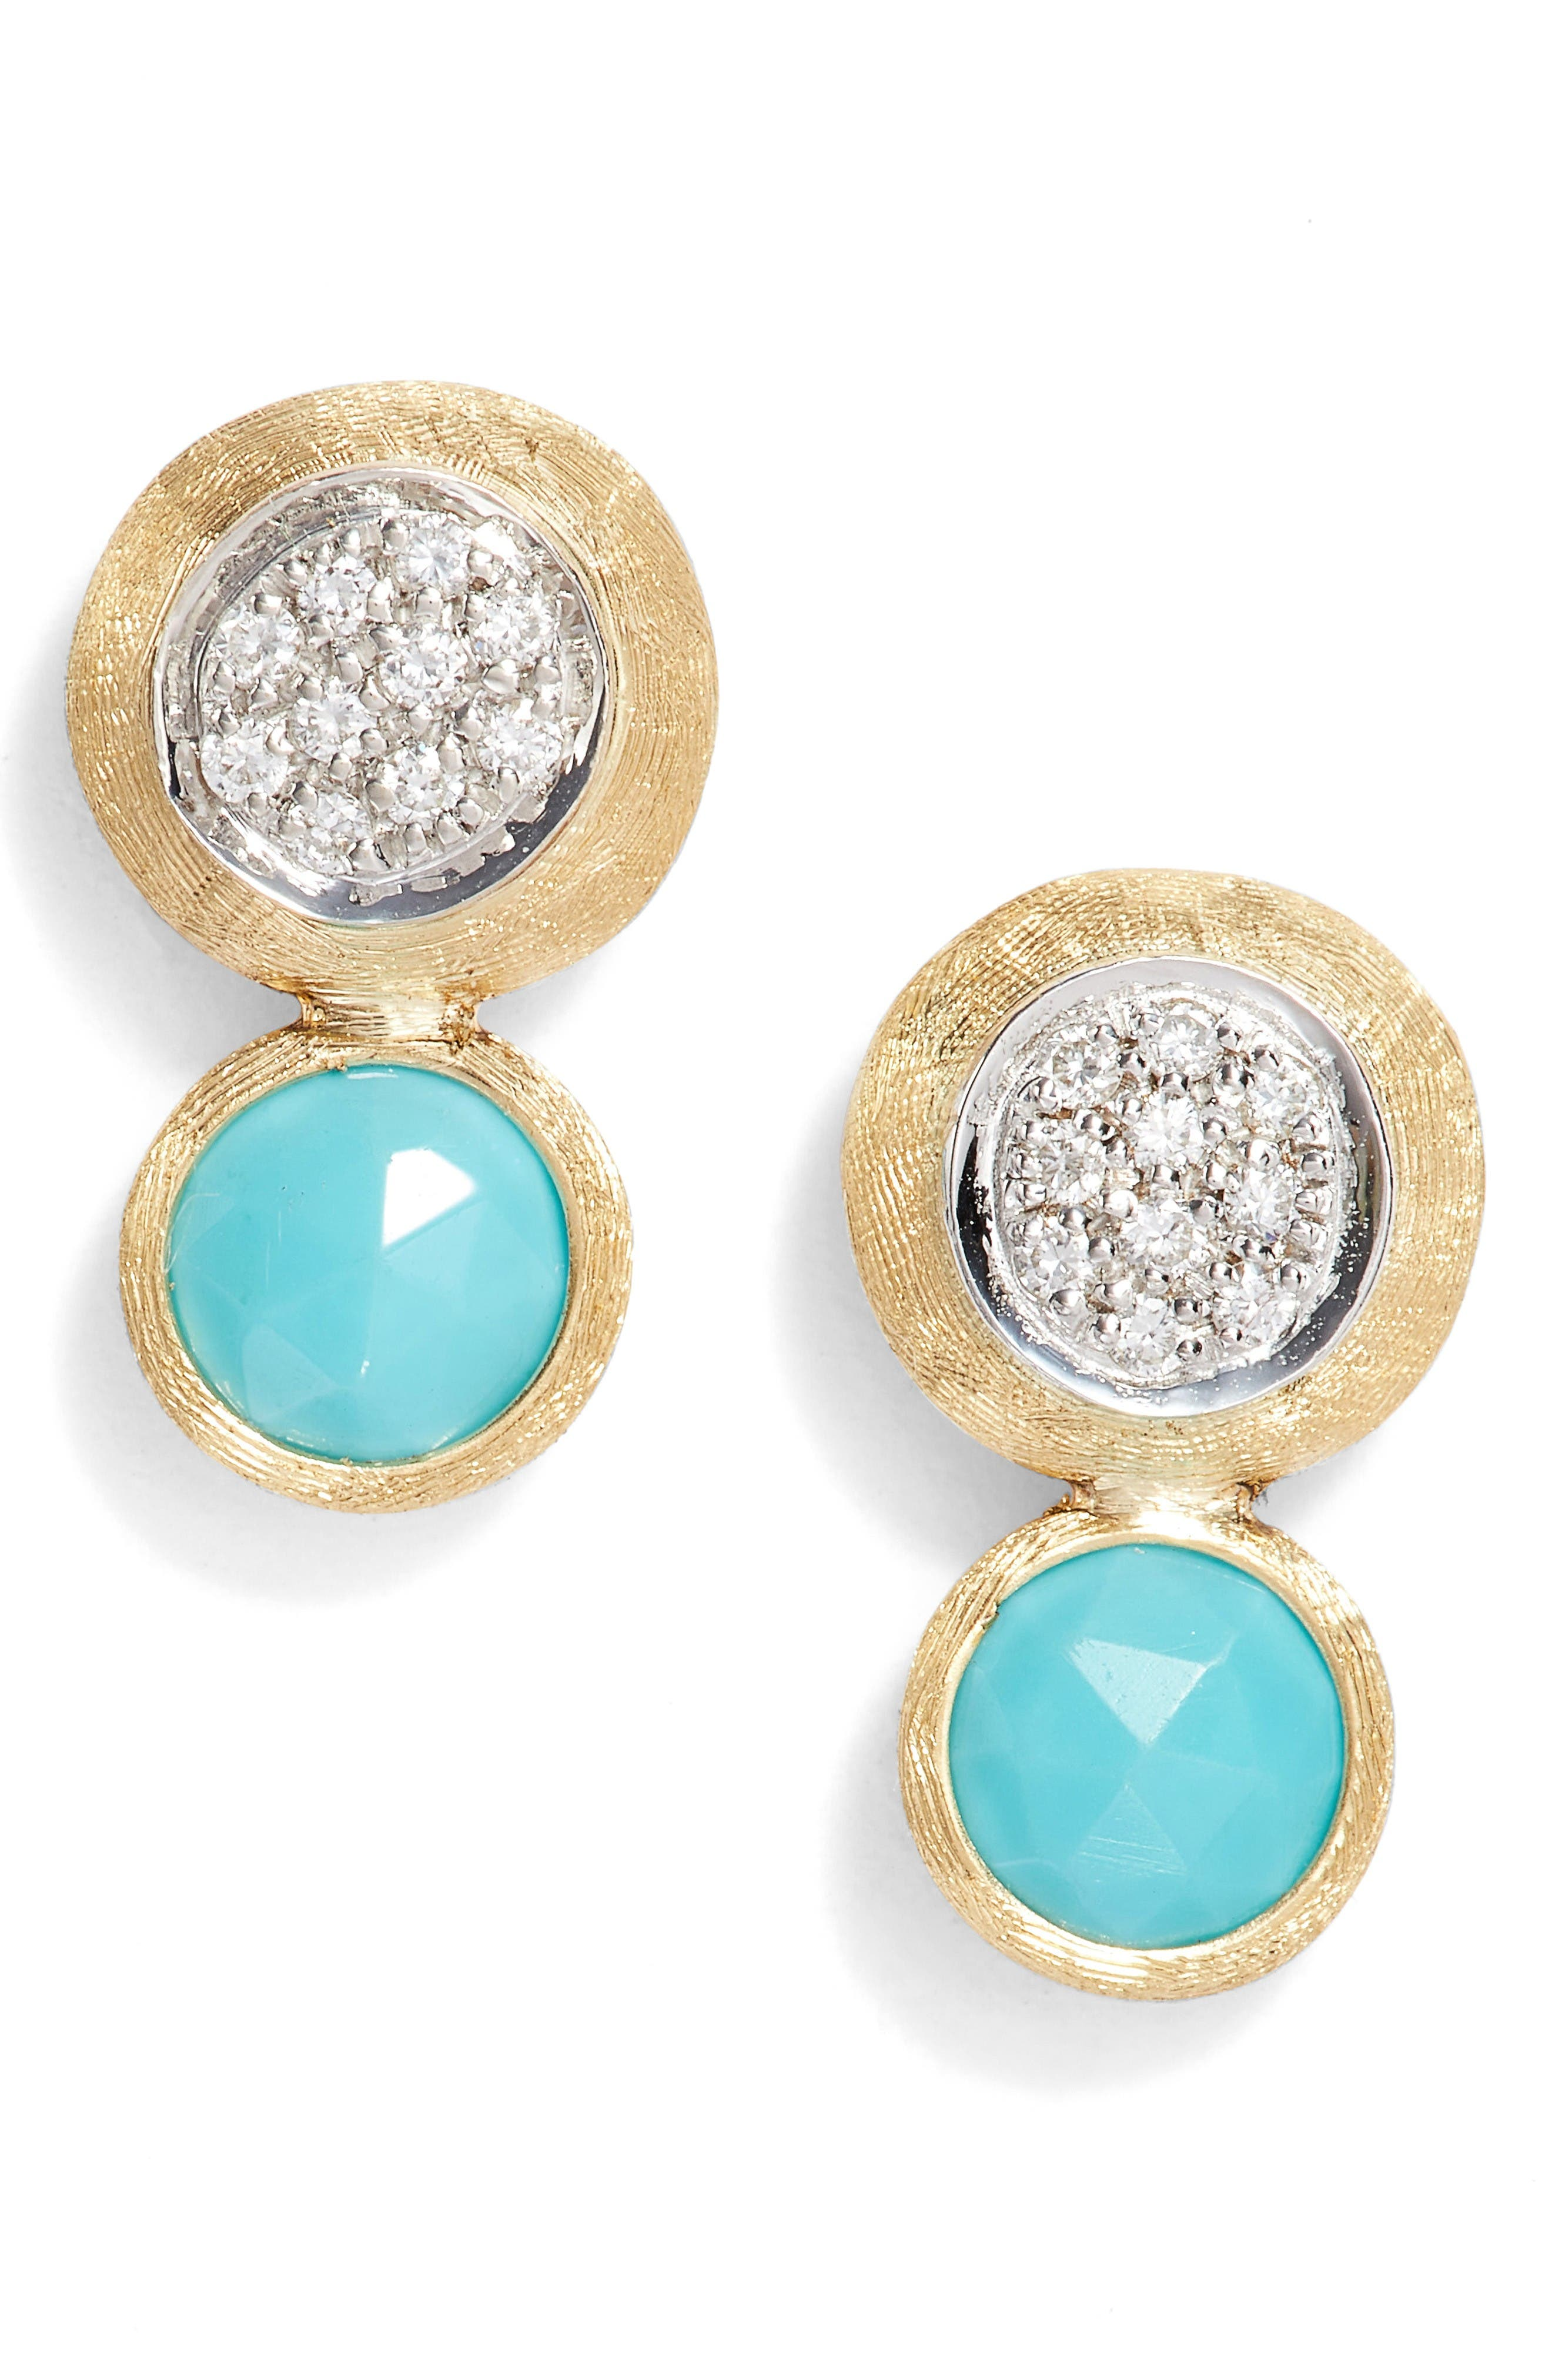 Jaipur Diamond & Turquoise Stud Earrings,                         Main,                         color, Yellow Gold/ Turquoise